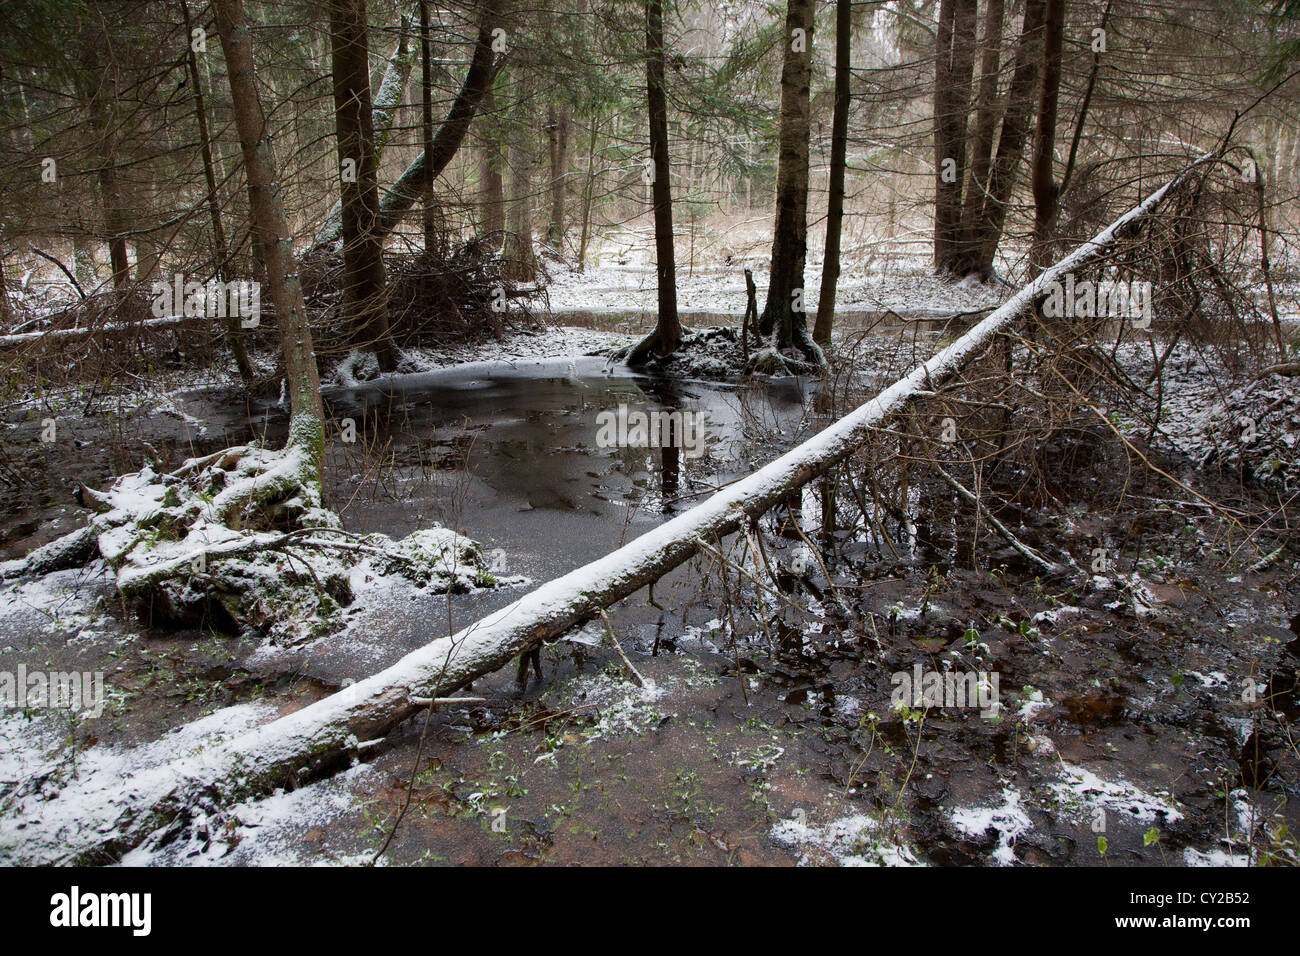 Early winter landscape of natural forest with dead spruce tree trunks lying - Stock Image